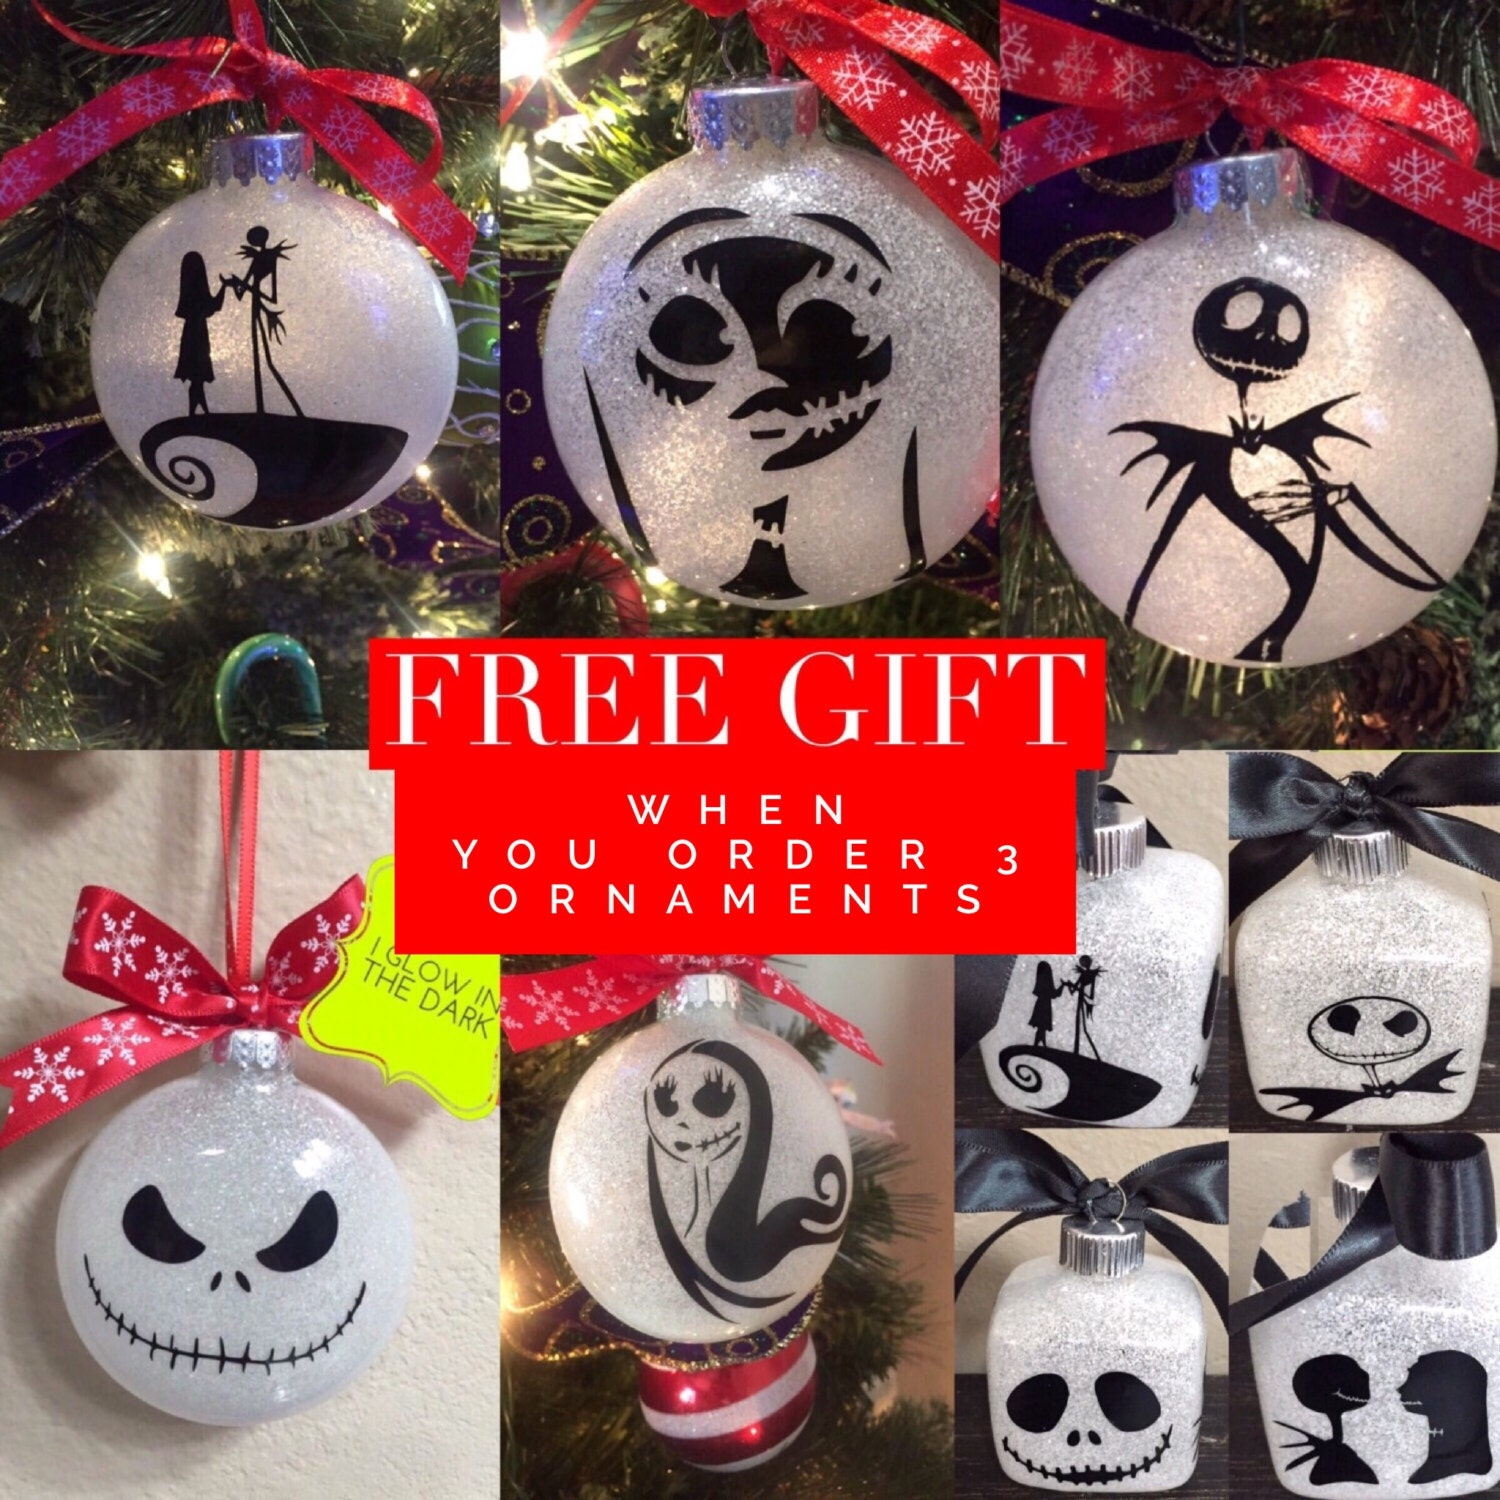 The nightmare before christmas ornaments - The Nightmare Before Christmas Ornaments 44